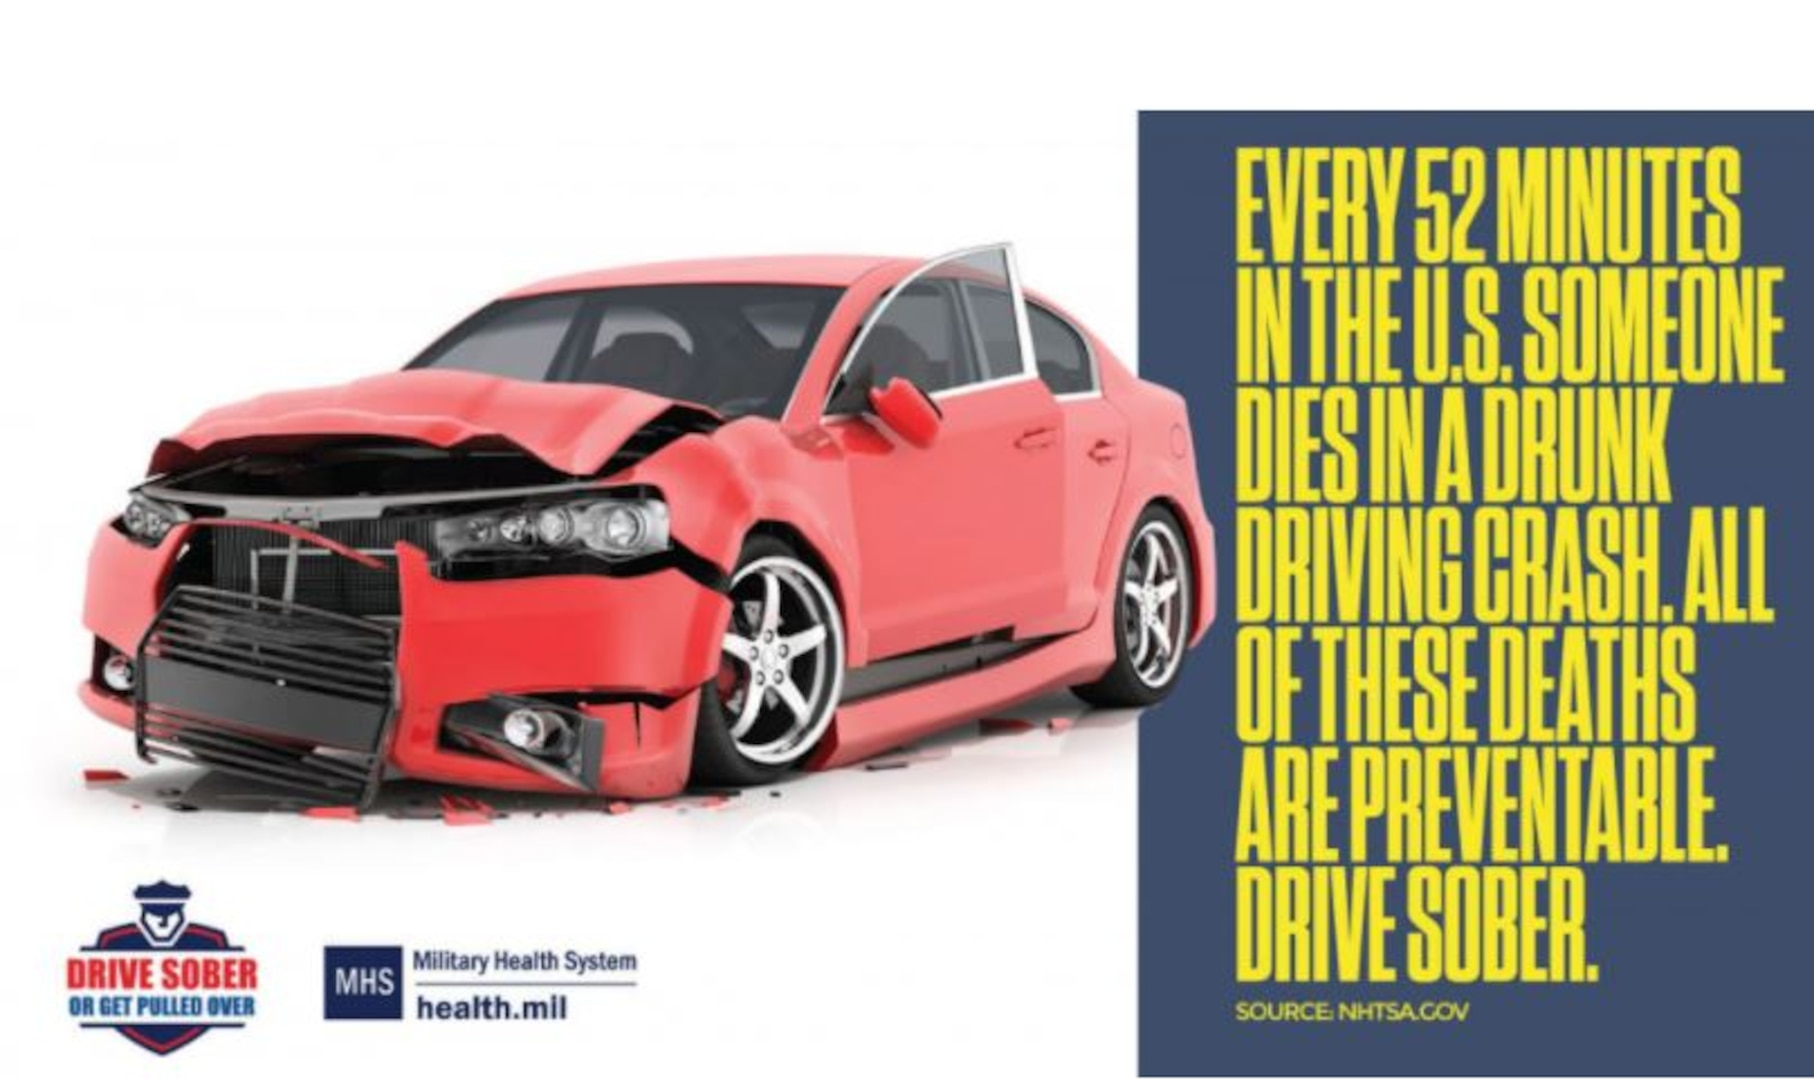 Every 52 minutes in the U.S. someone dies in a drunk driving crash. All of these deaths are preventable. Drive Sober.